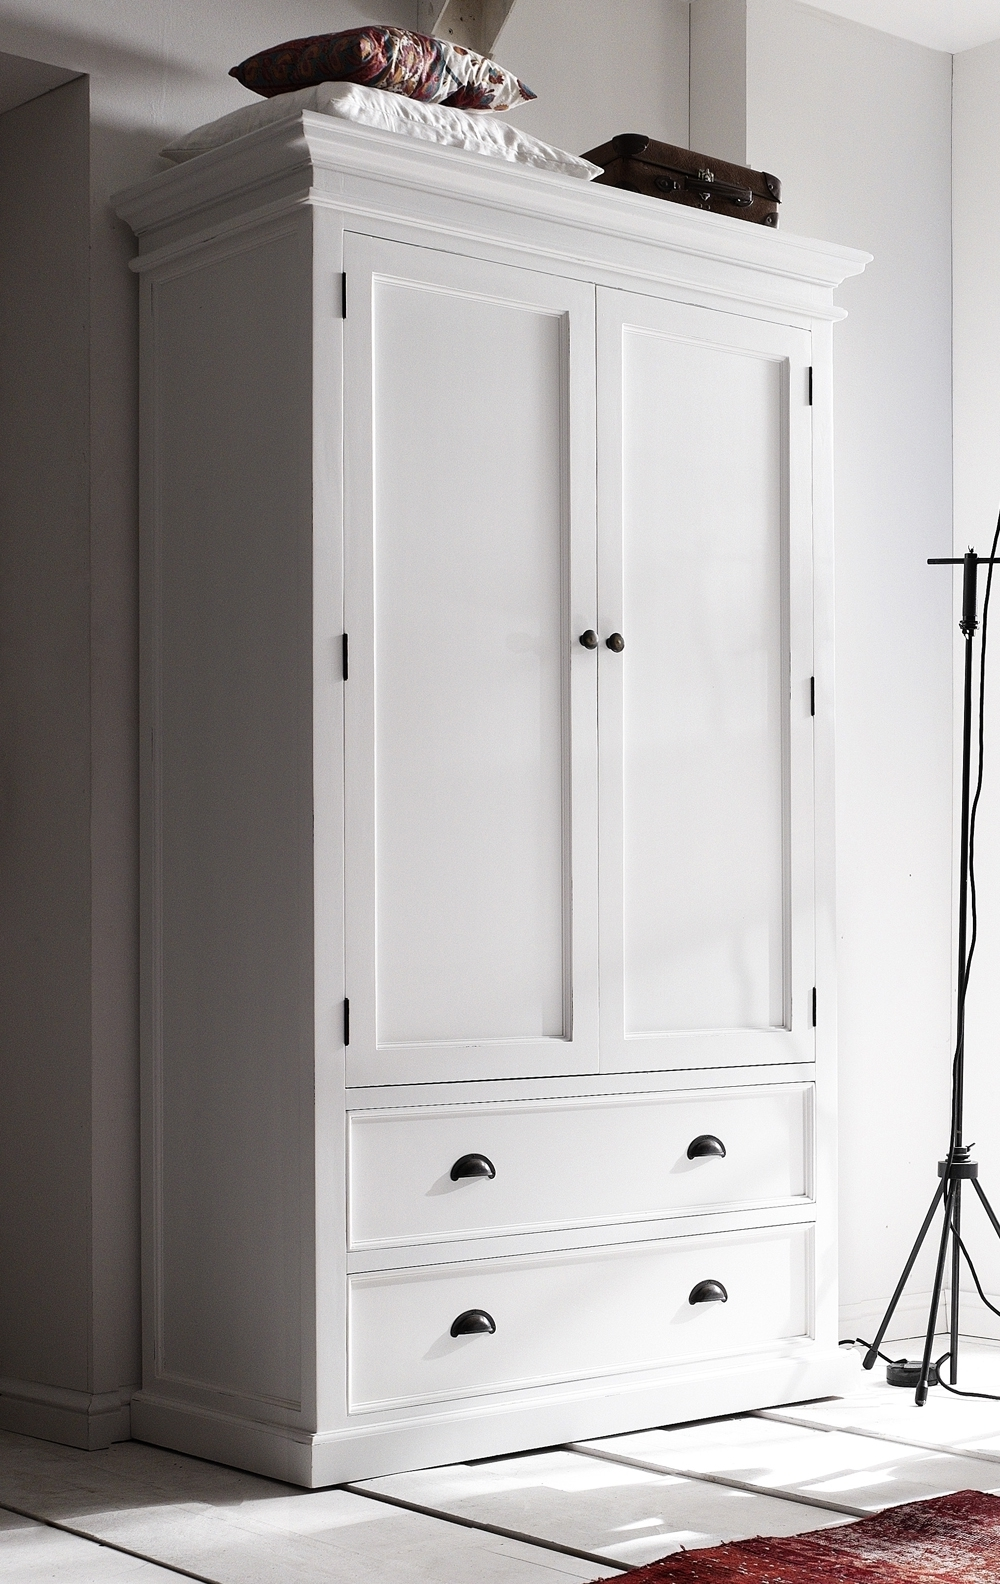 Latest With The Best Solution To Practical But Elegant Design, The With Regard To Cheap Double Wardrobes (View 6 of 15)